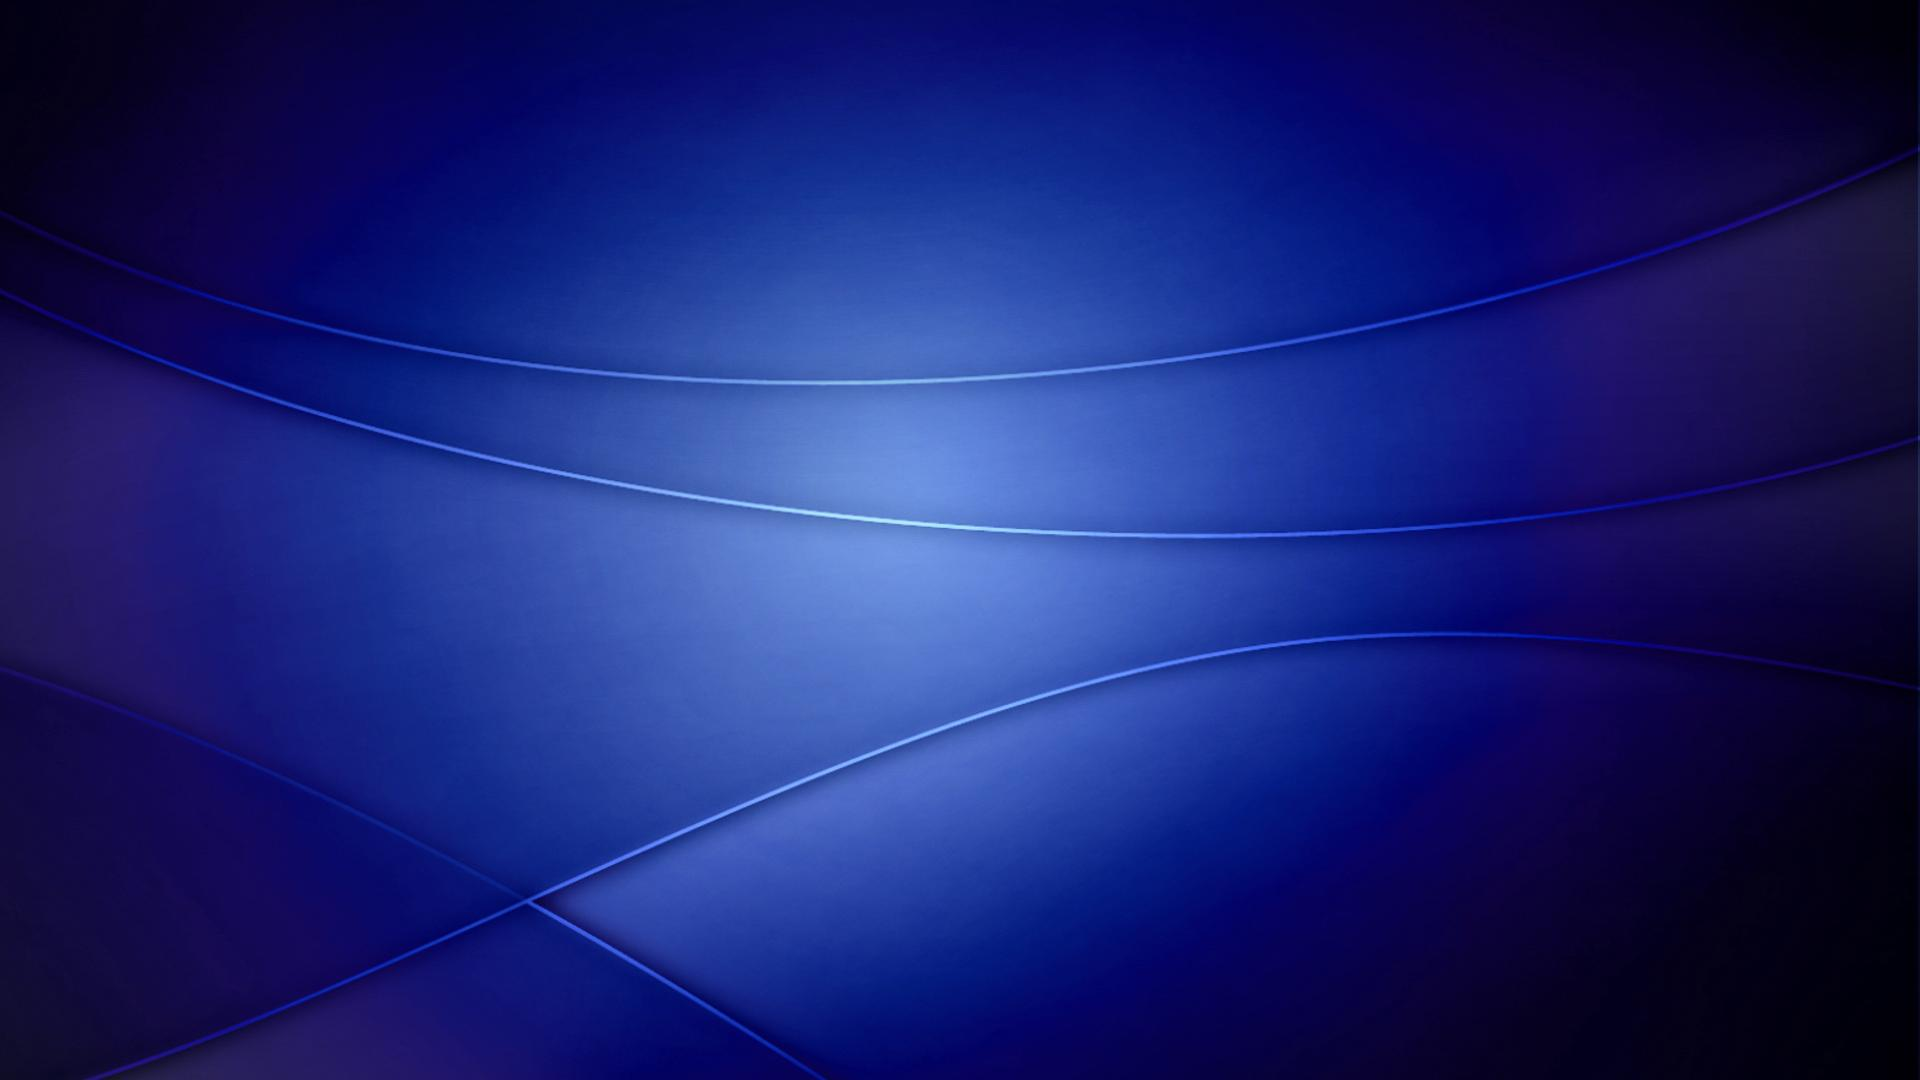 Deep Blue Lines Background For Windows 7 Widescreen and HD 1920x1080